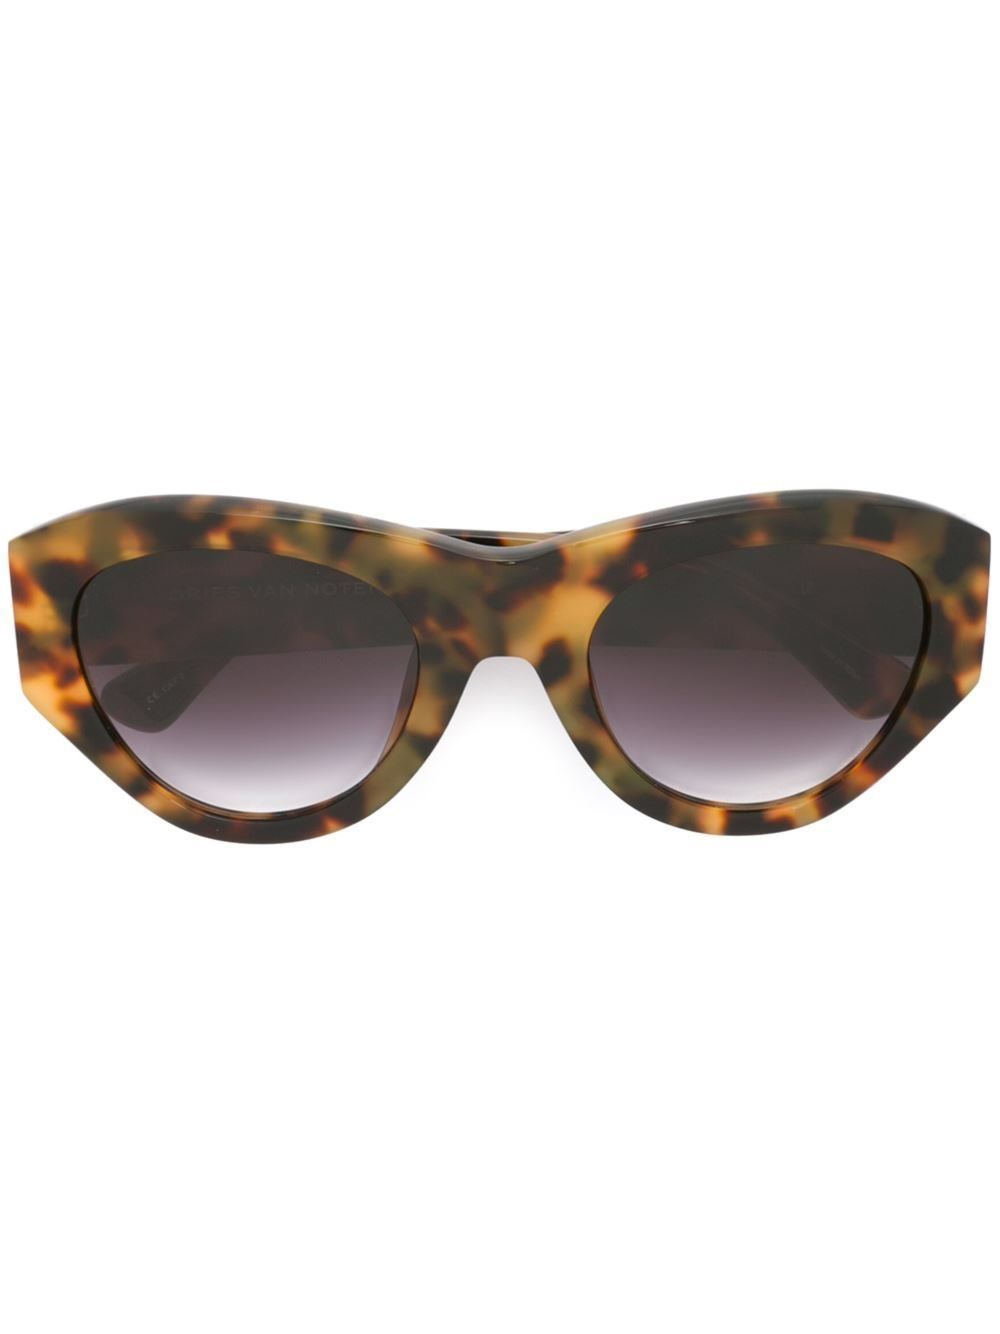 Linda Farrow Luxe Sunglasses | Linda Farrow Mickey Mouse Sunglasses | Linda Farrow Sunglasses